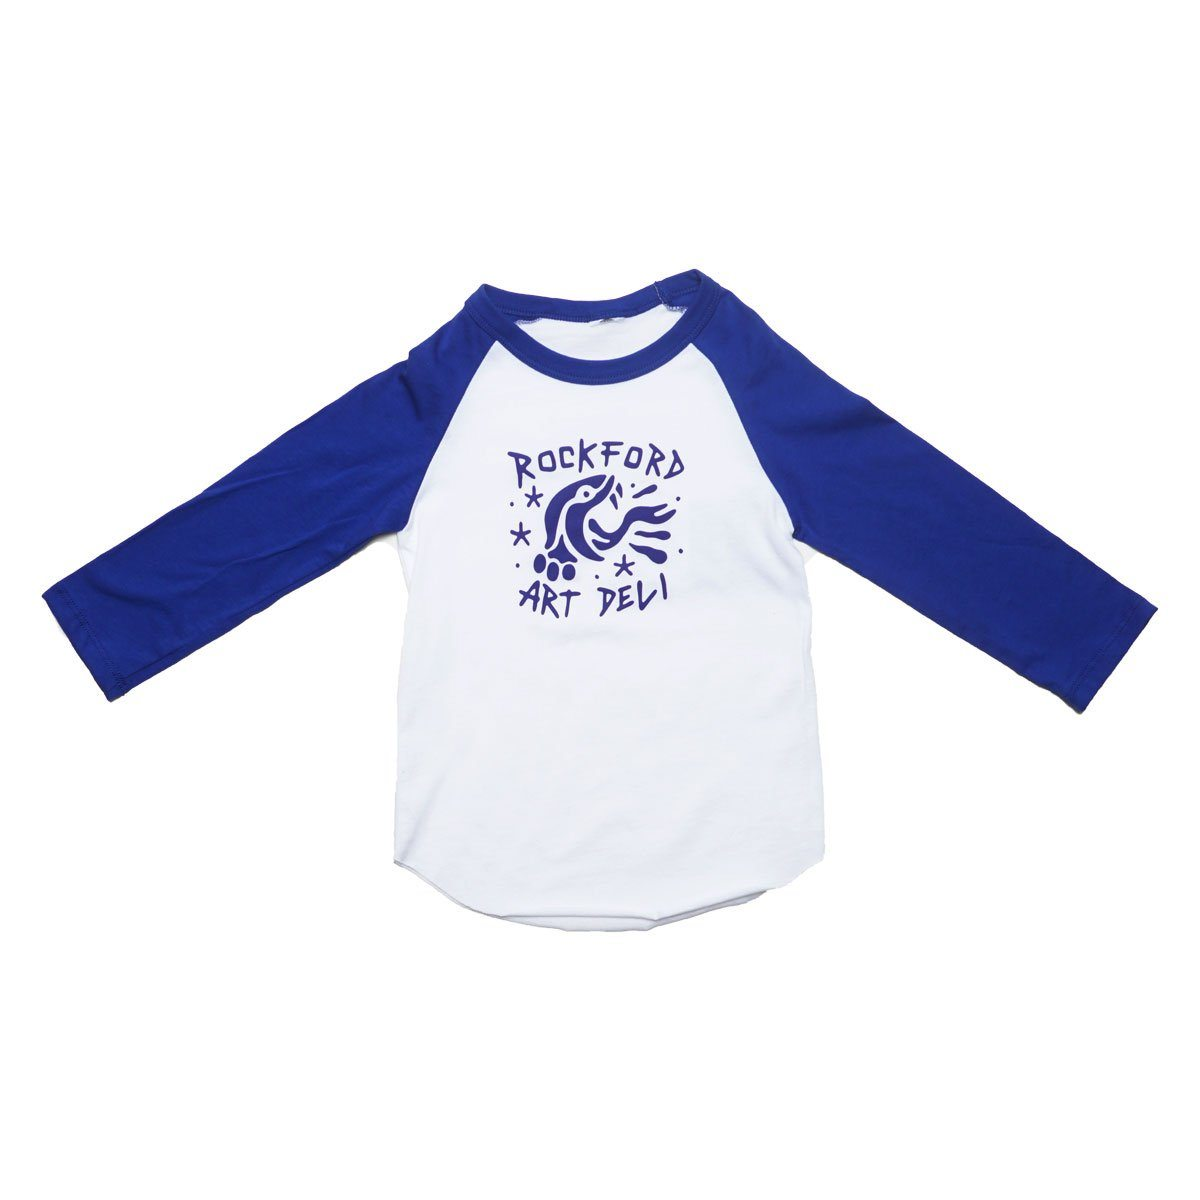 Sindy Sinn Kids Baseball Tee Kid + Baby US Blanks